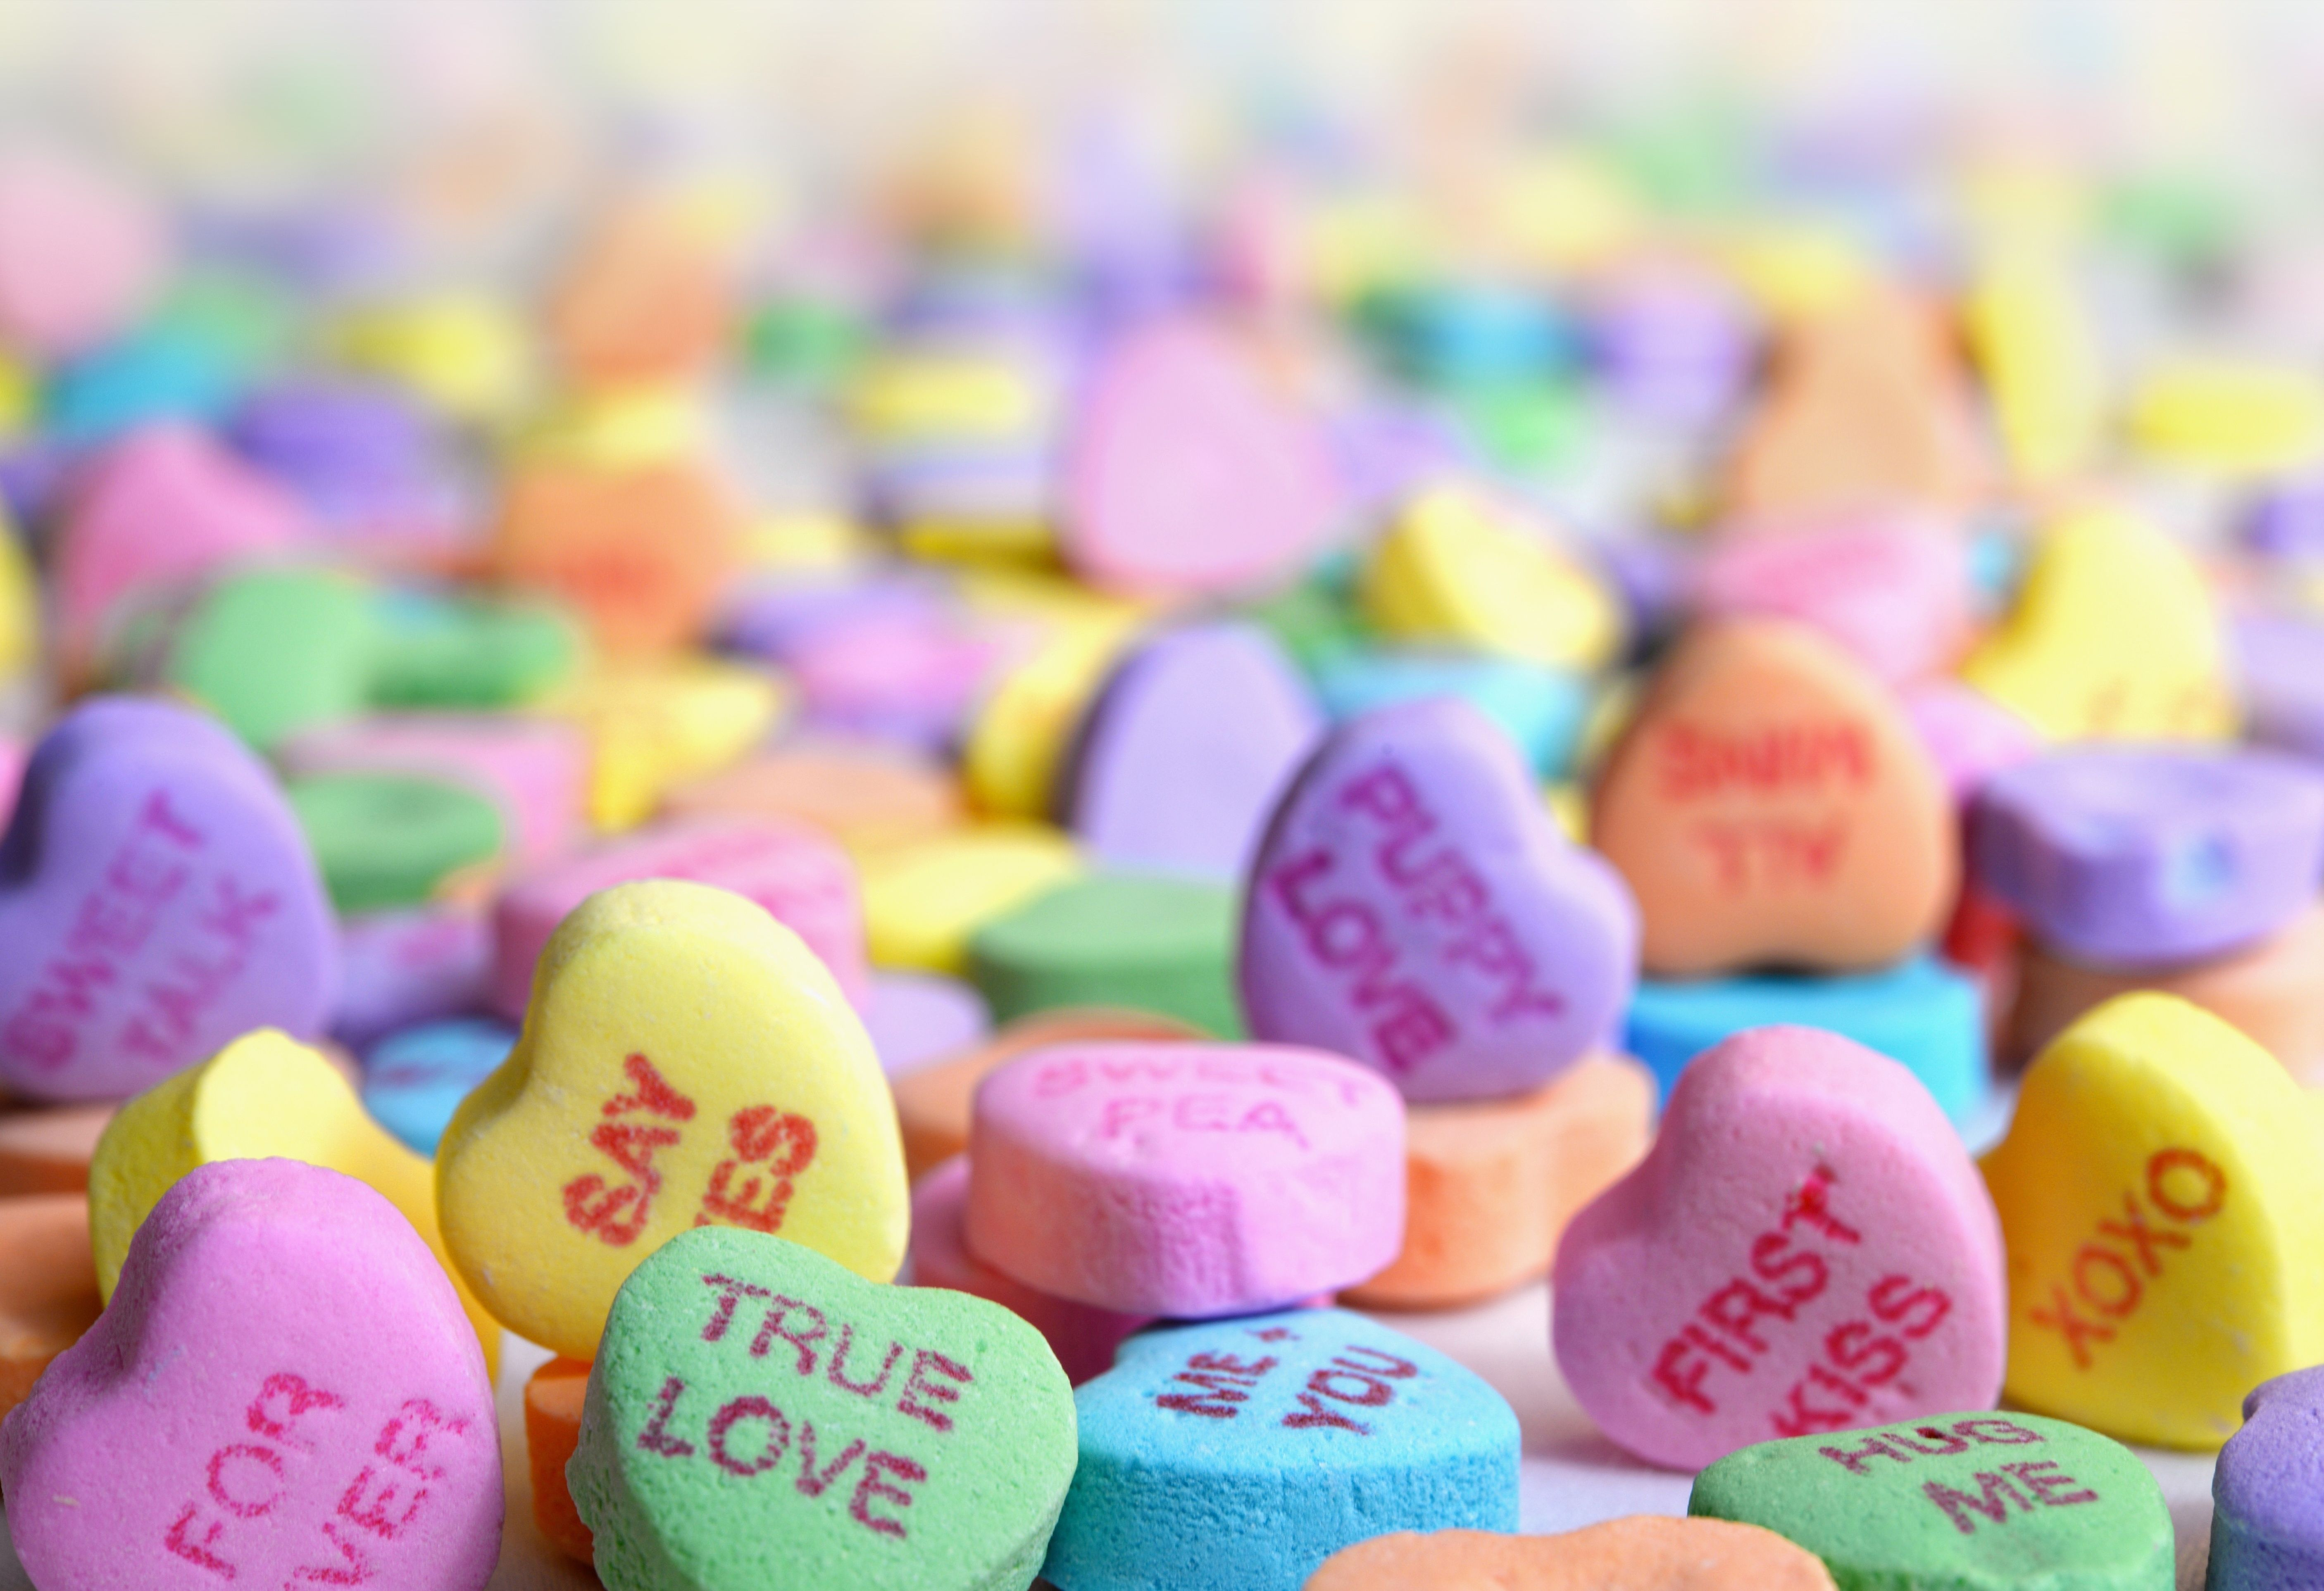 5 Valentineu0027s Day Gifts For Kids That Arenu0027t Candy